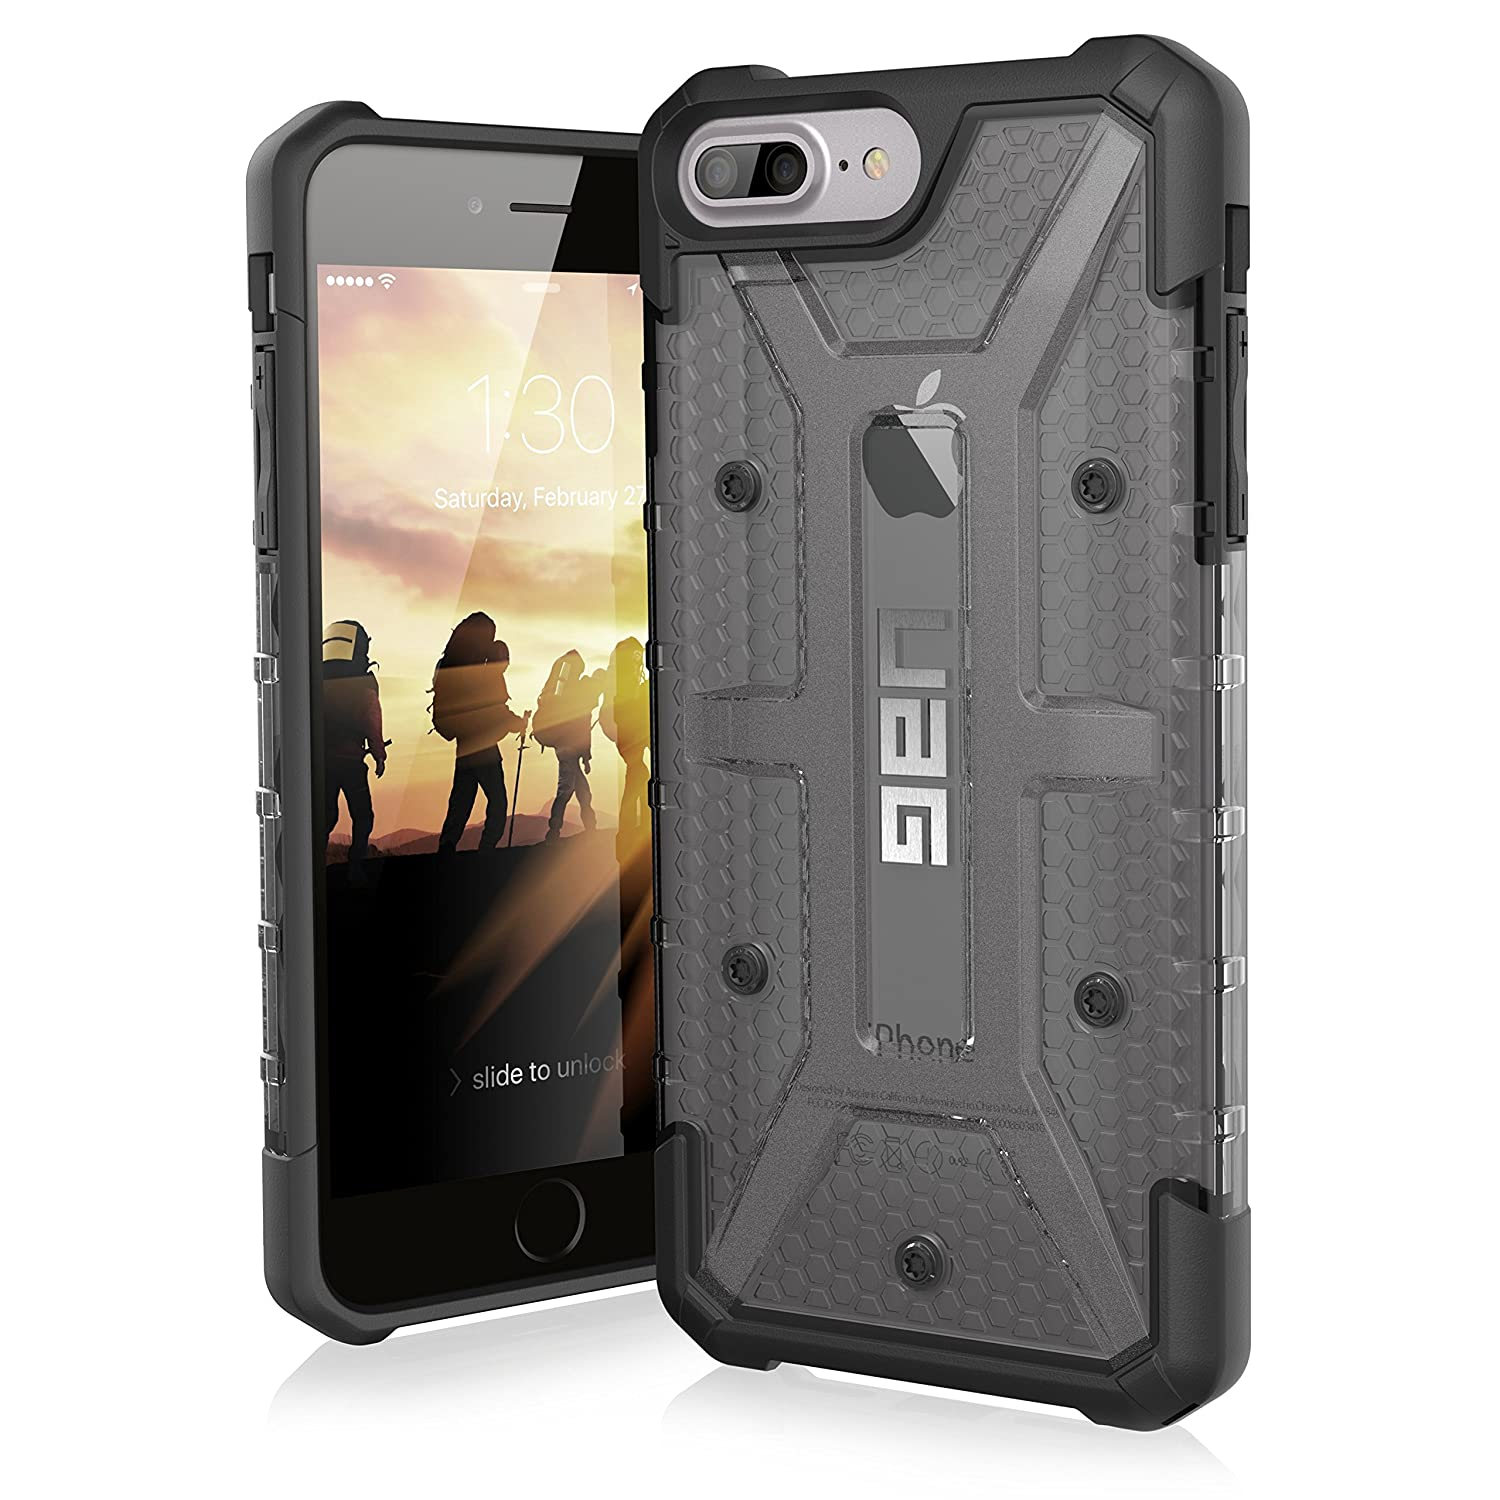 huge selection of 92977 96348 UAG iPhone 8 Plus / iPhone 7 Plus / iPhone 6 Plus [5.5-inch screen] Plasma  Feather-Light Rugged [ASH] Military Drop Tested iPhone Case